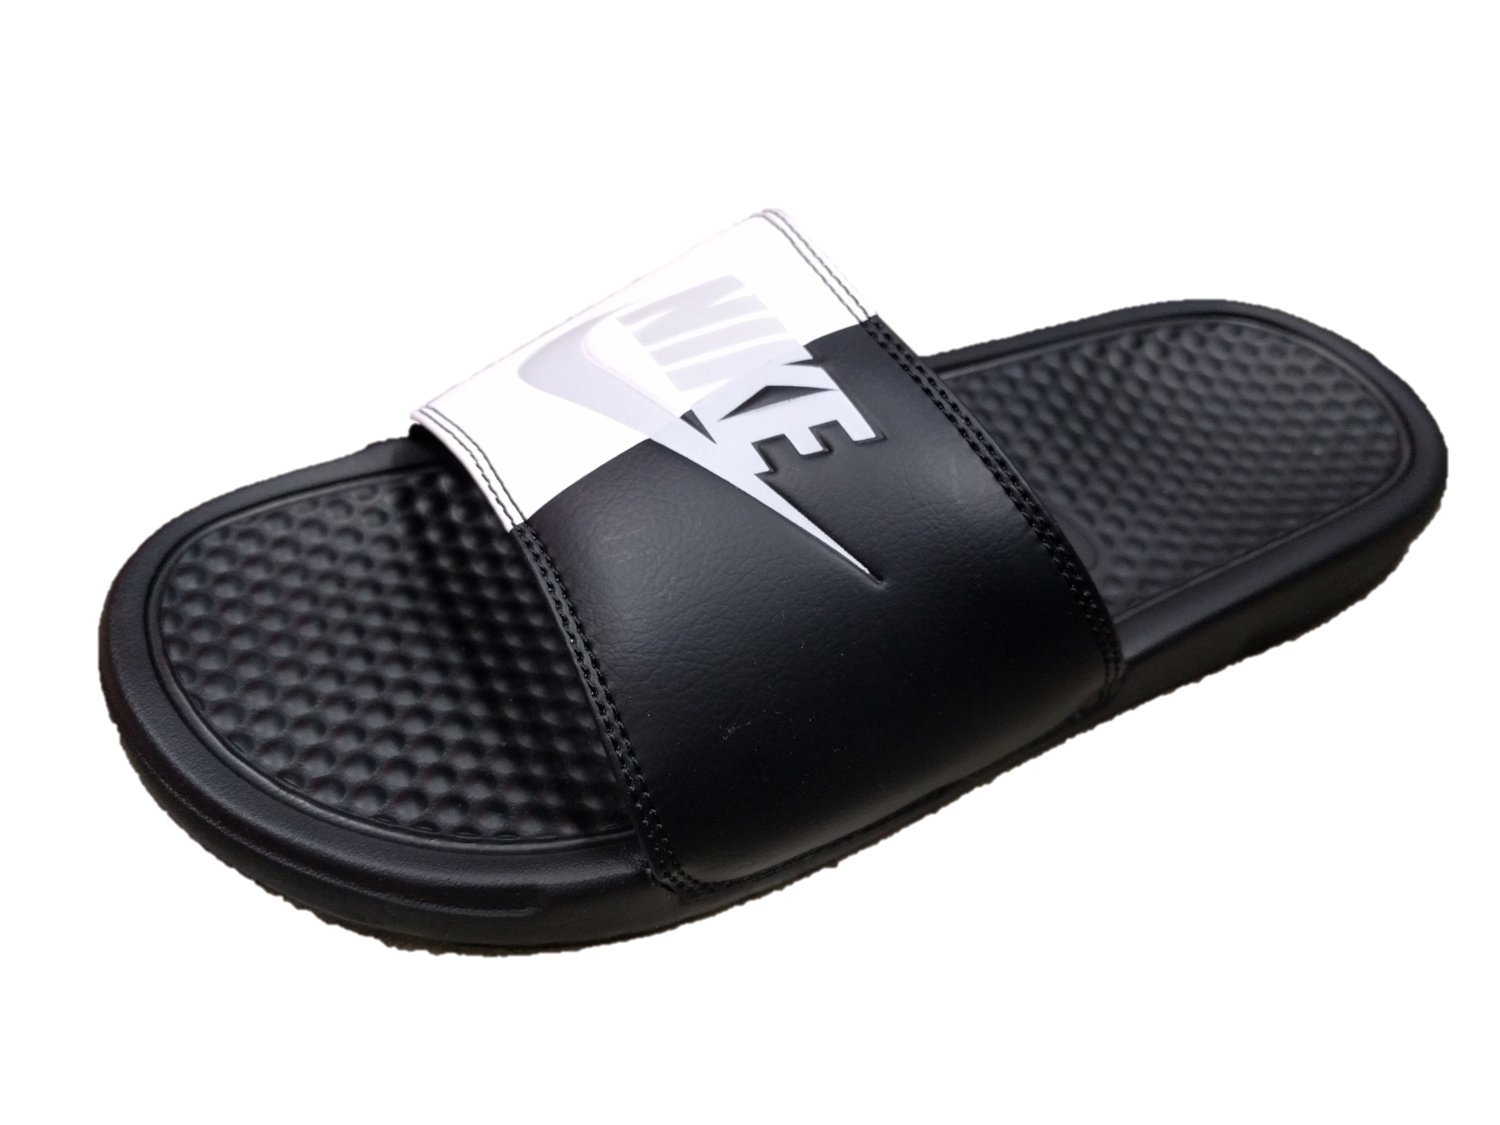 4849b9401f89 become the mantra for sports enthusiasts everywhere. The Nike Benassi Just  Do It Women s Slide continues this lasting ...